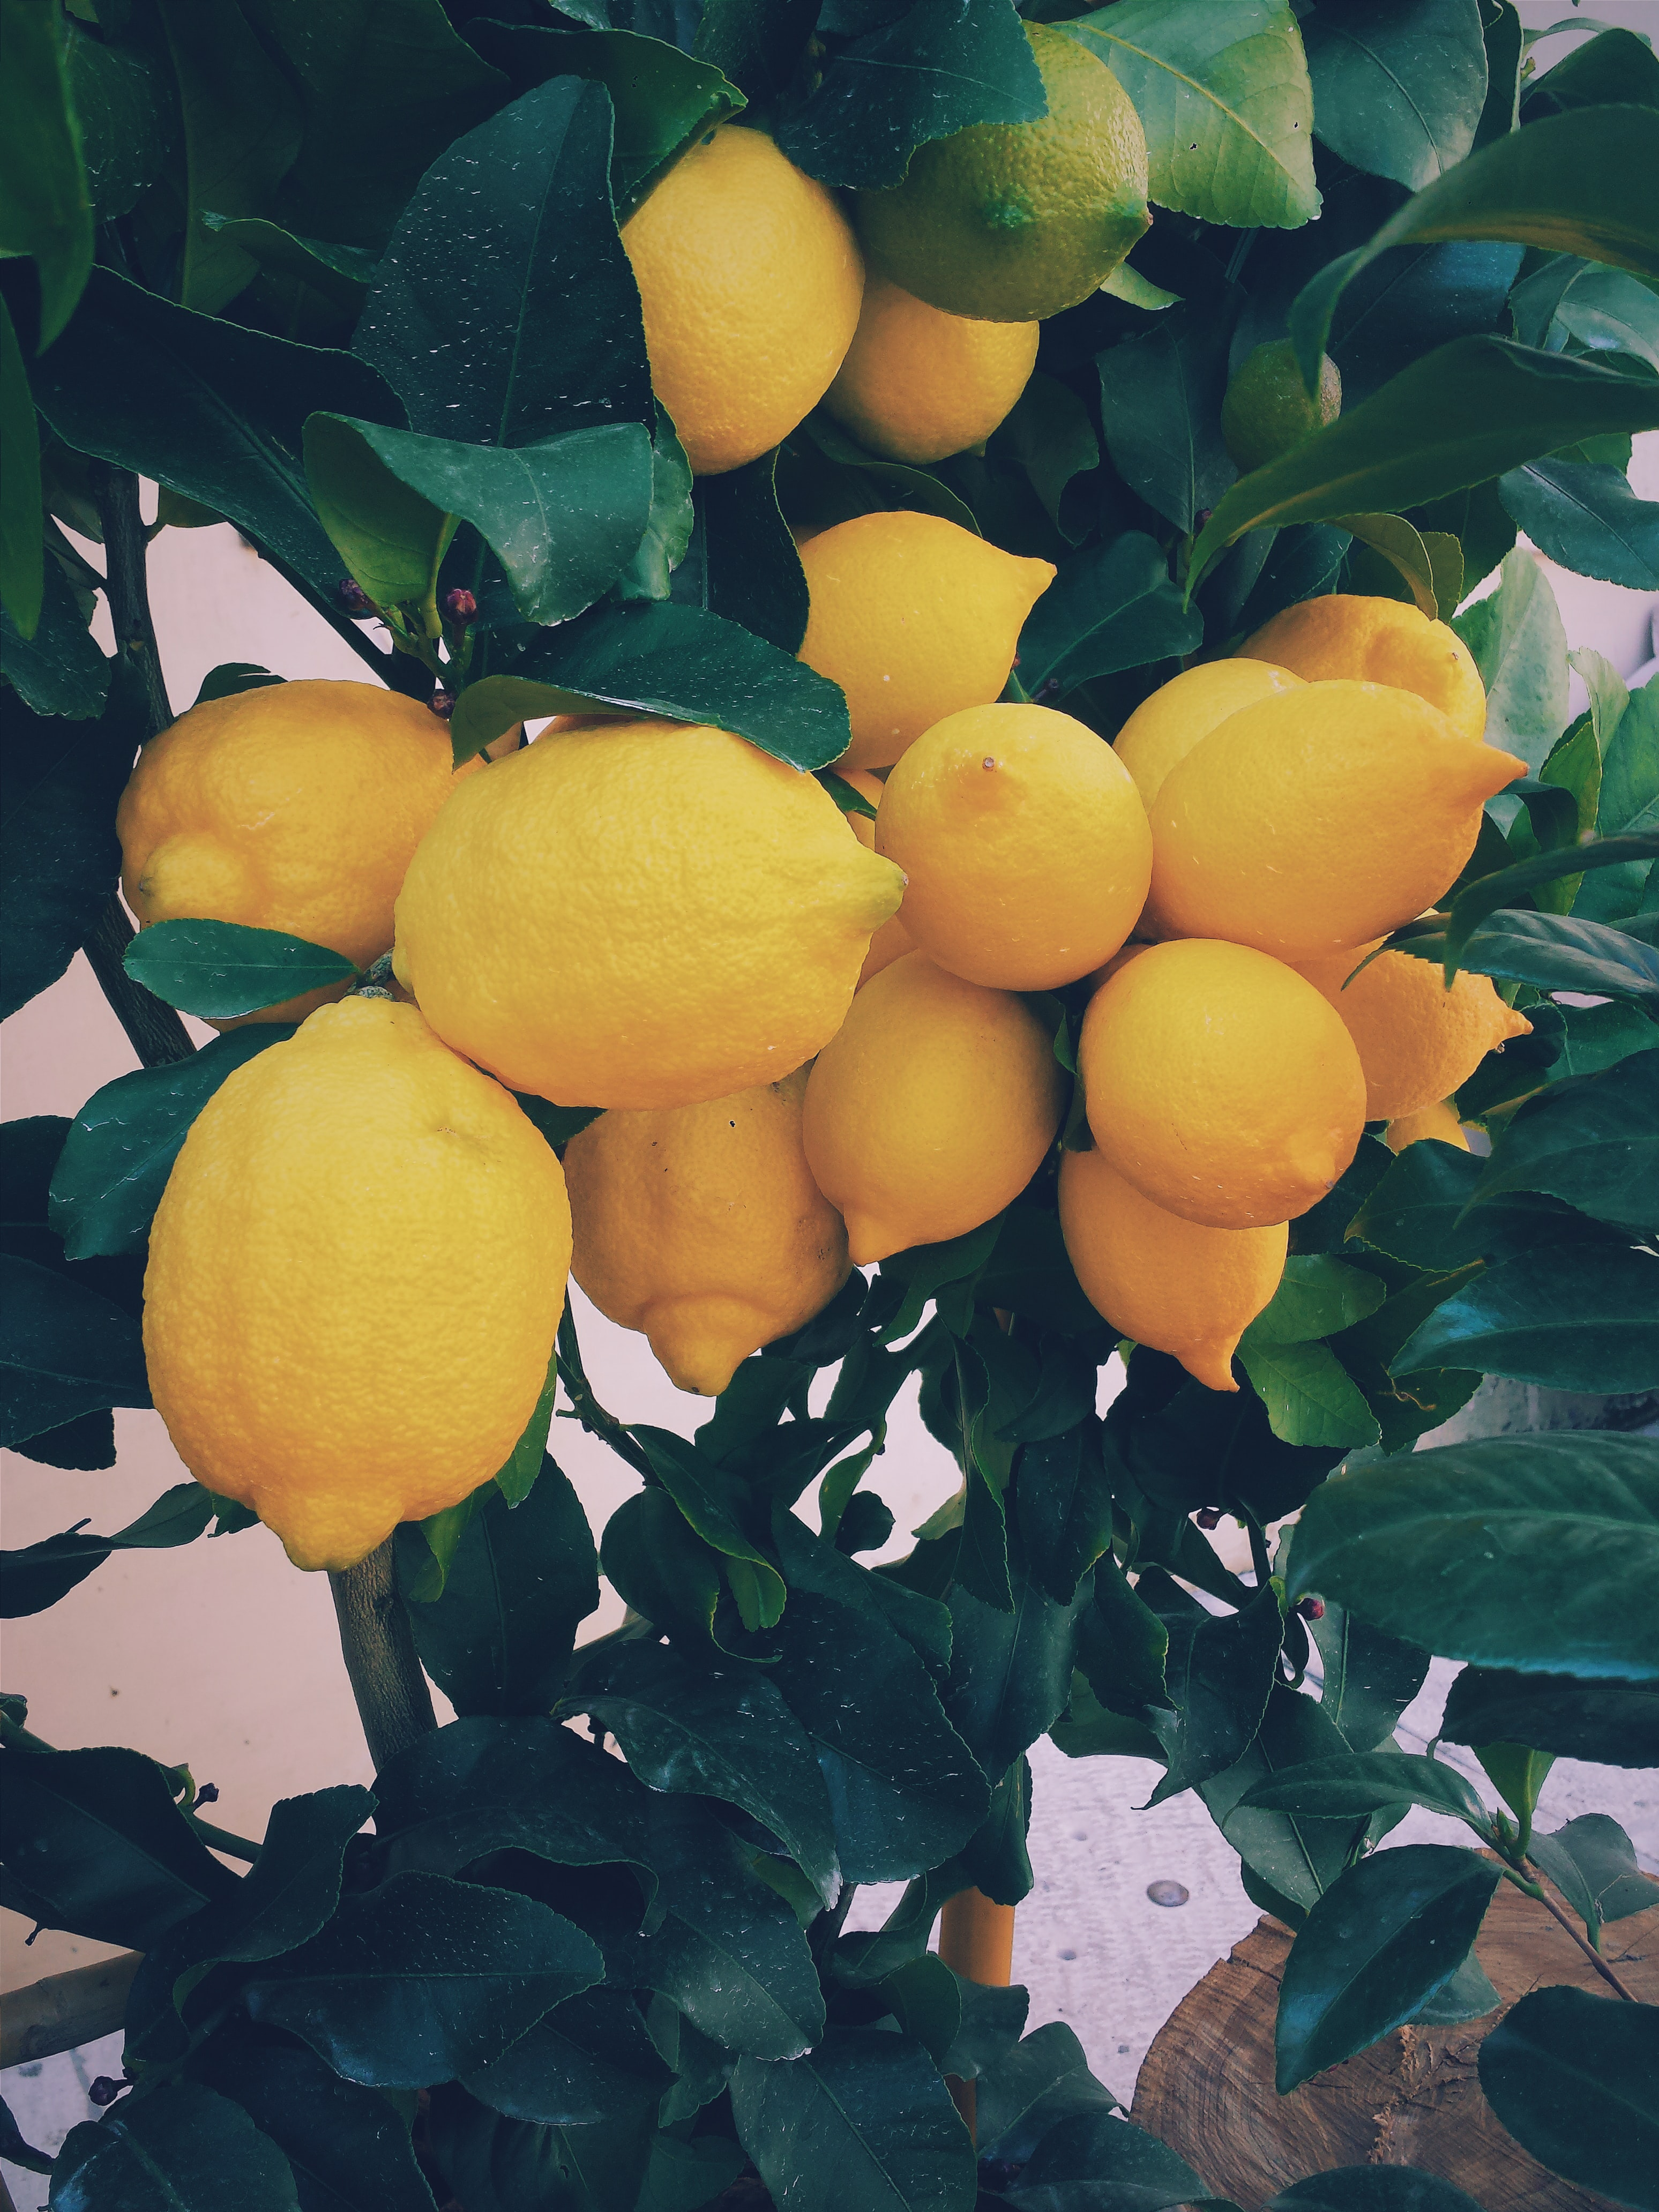 A cluster of large ripe lemons on a lemon tree